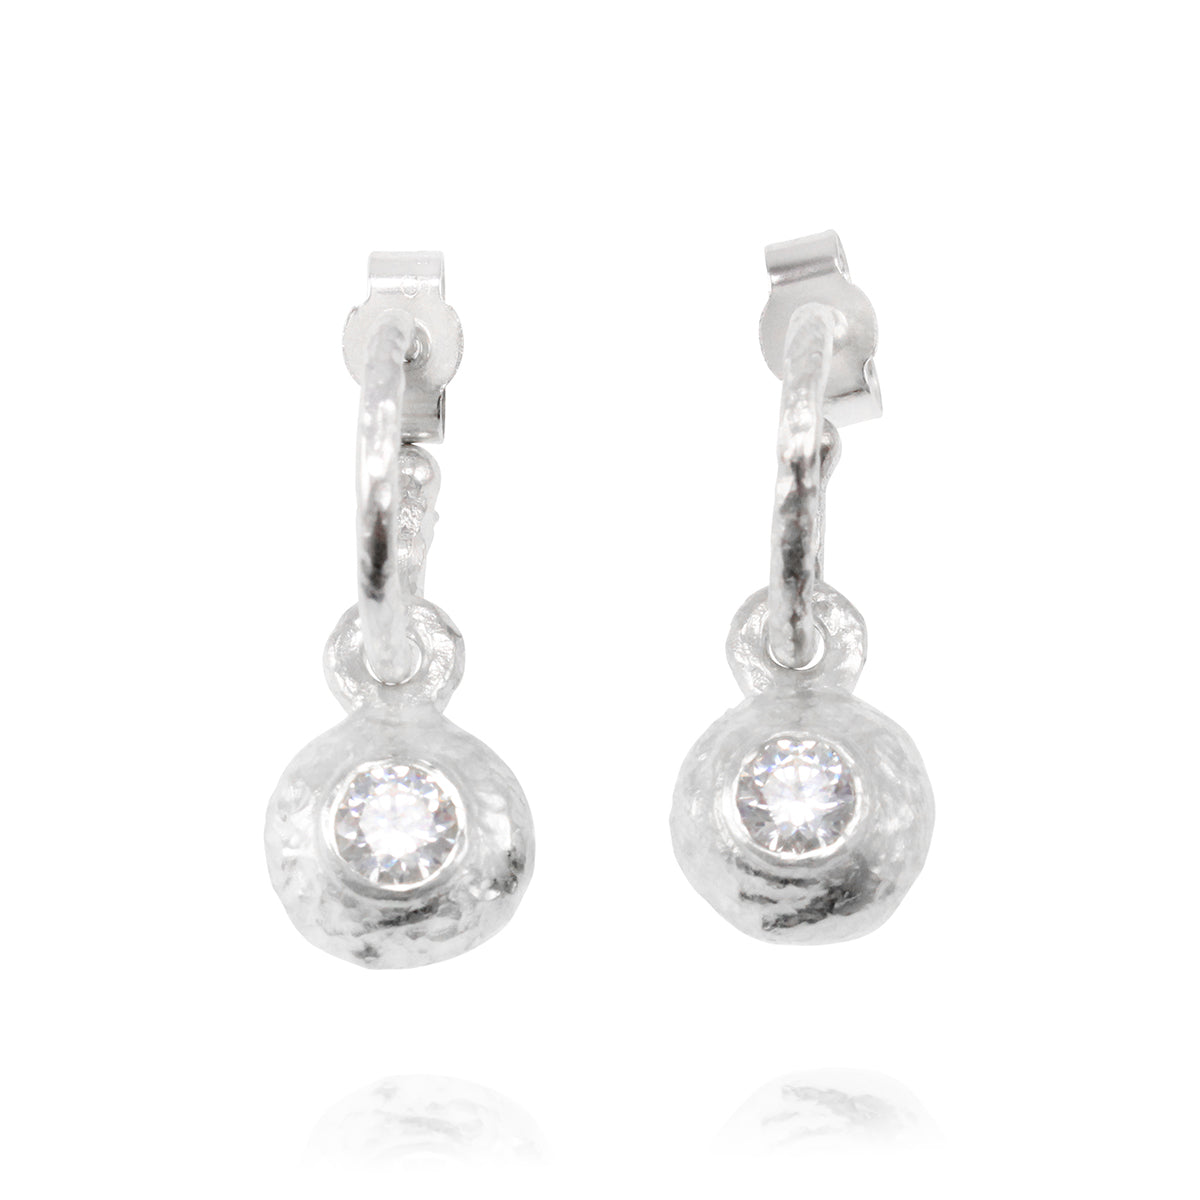 Earrings in sterling silver on hoops silver set with white cubic zirconia. - Paul Magen